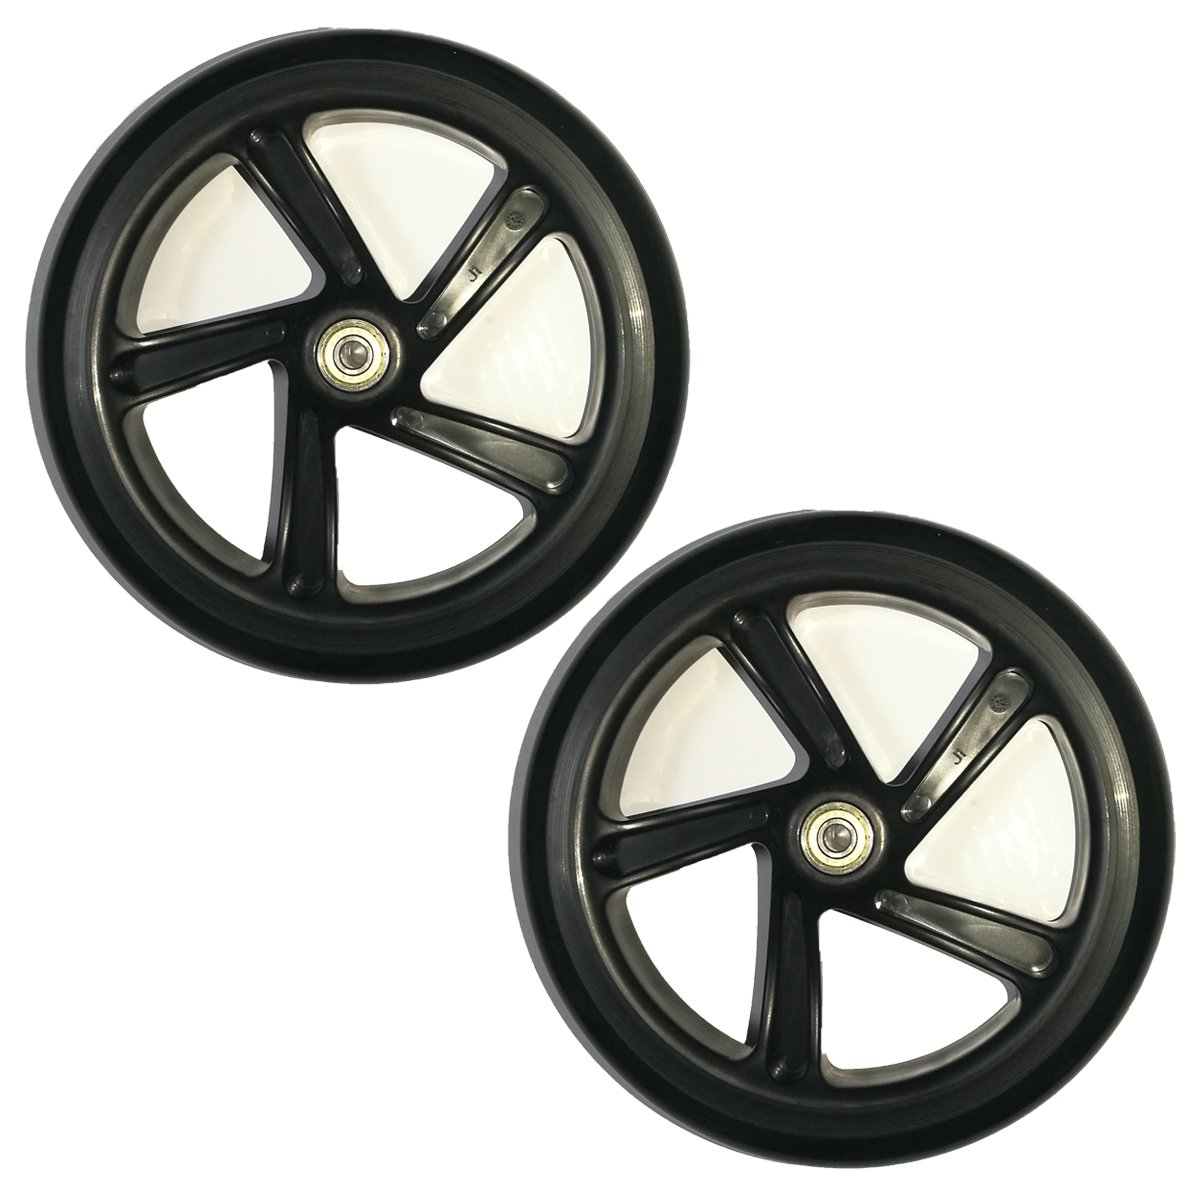 Z-FIRST 2PCS 200mm Adult Scooter Wheels with Abec 9 Bearings for Razor and Adult Kick Scooters